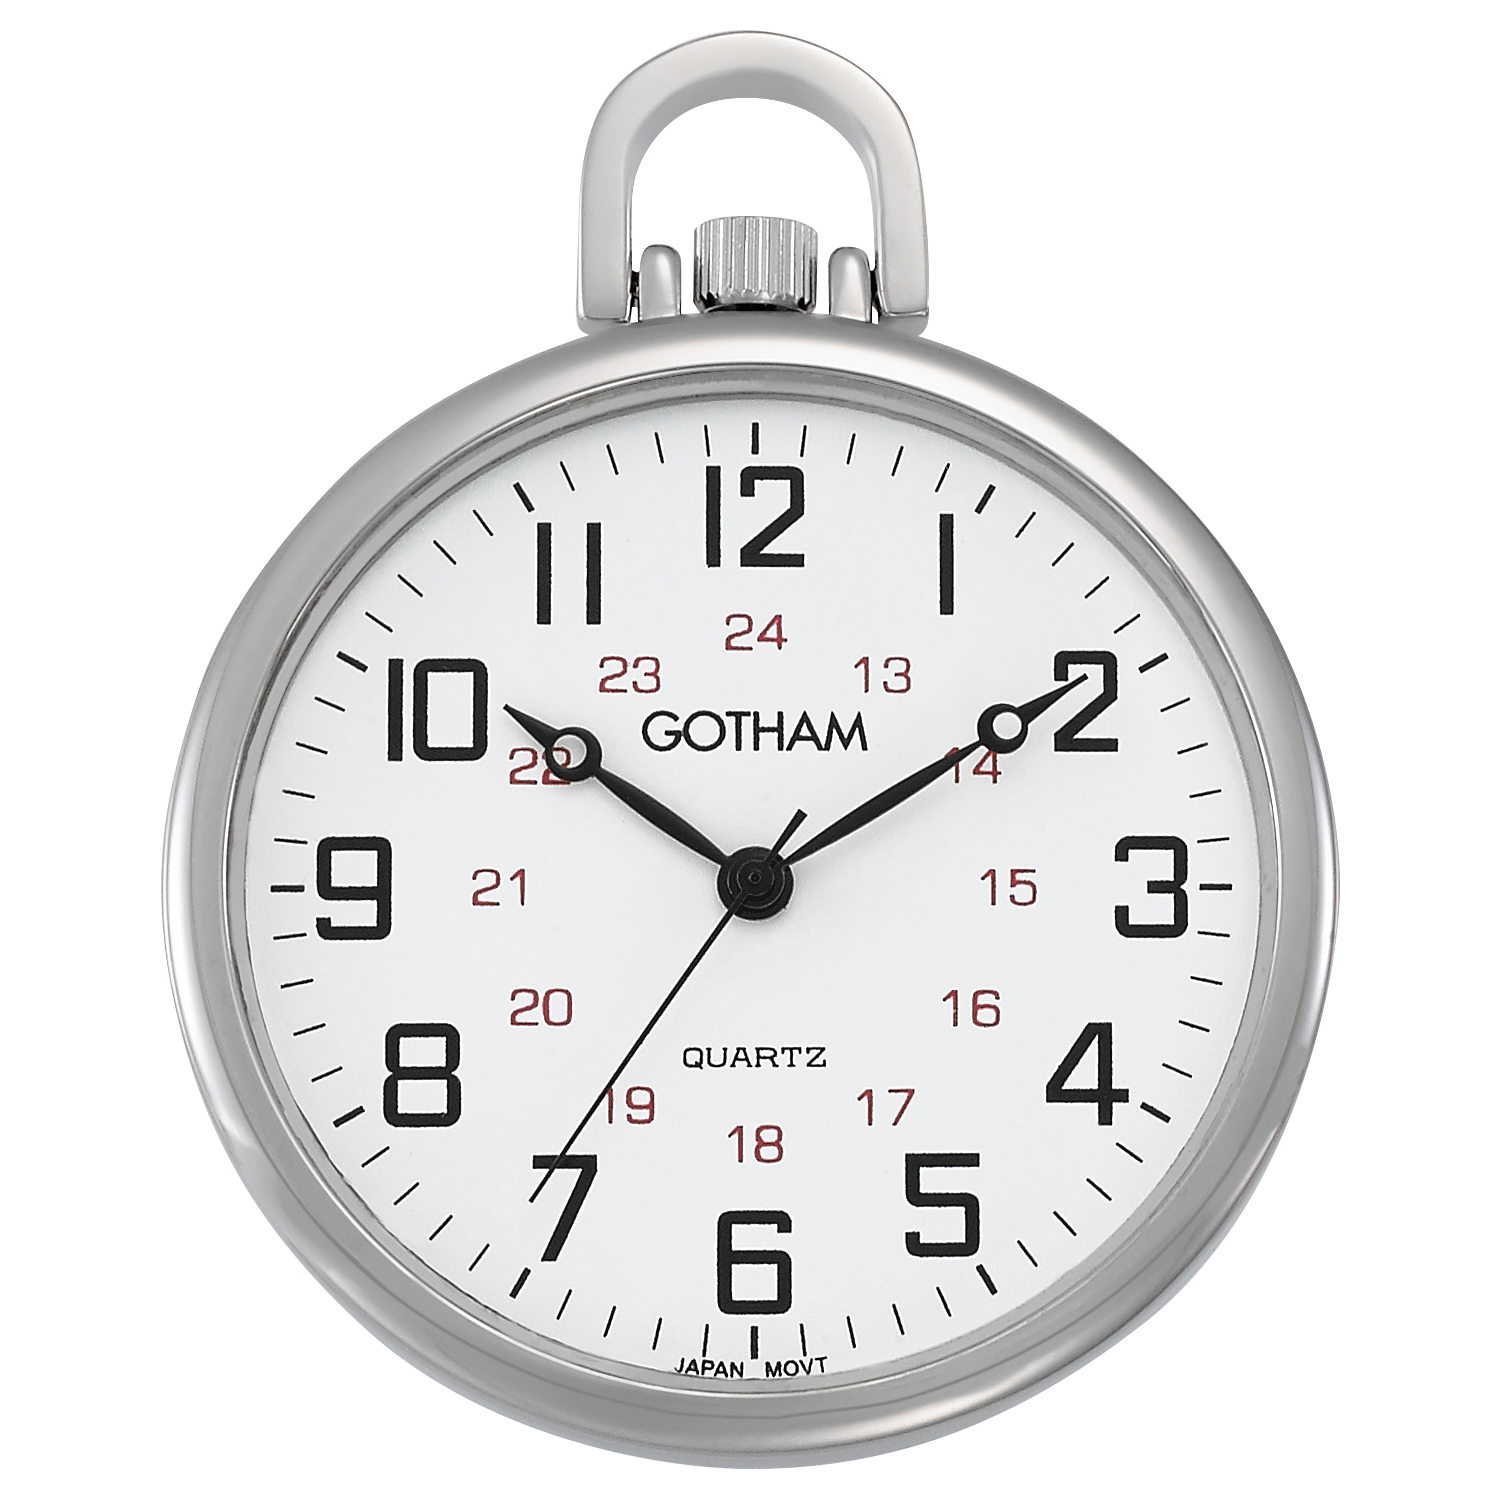 Gotham Men's Railroad Open Face Silver-Tone Analog Quartz Pocket Watch with Chain # GWC15026S